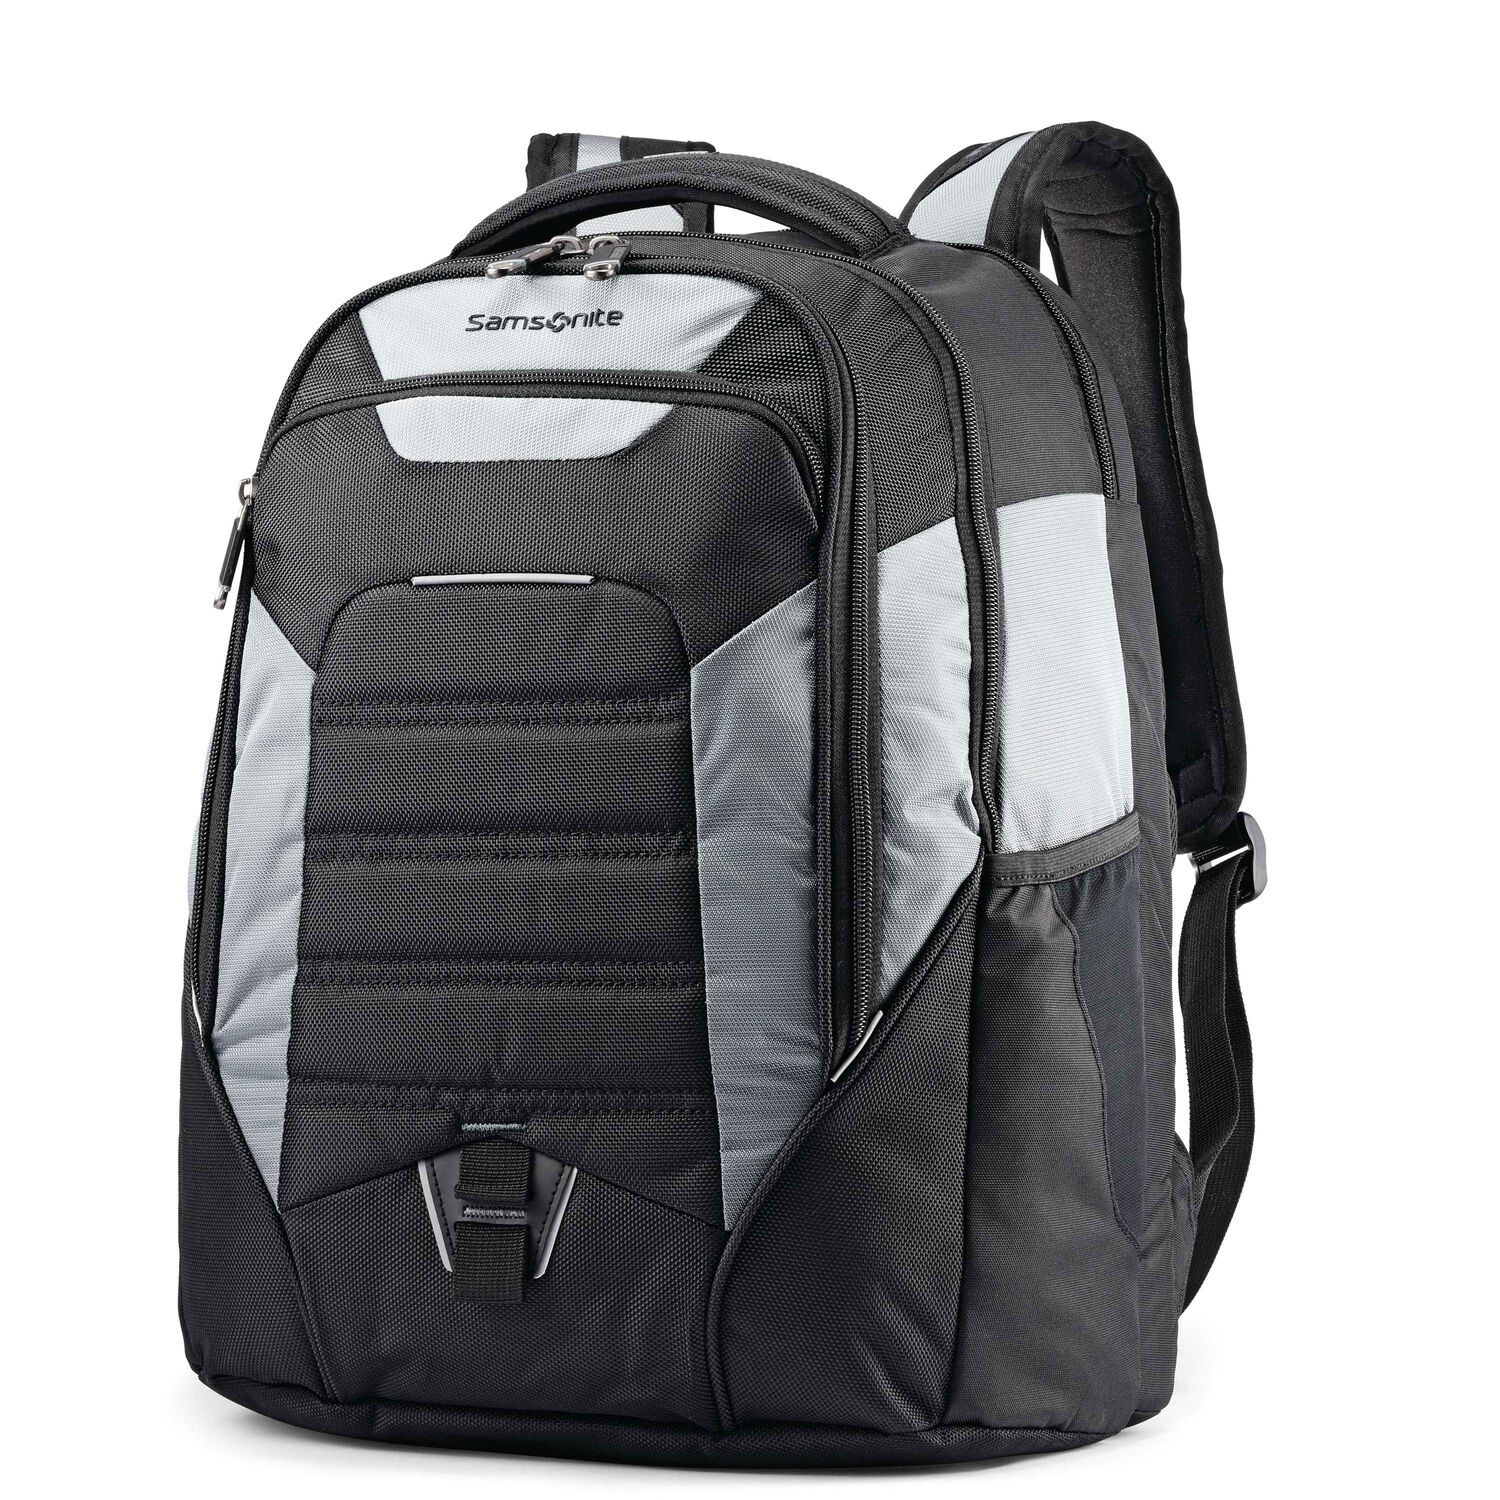 950f07d7296 Samsonite UBX Commuter Backpack in the color Black Graphite.